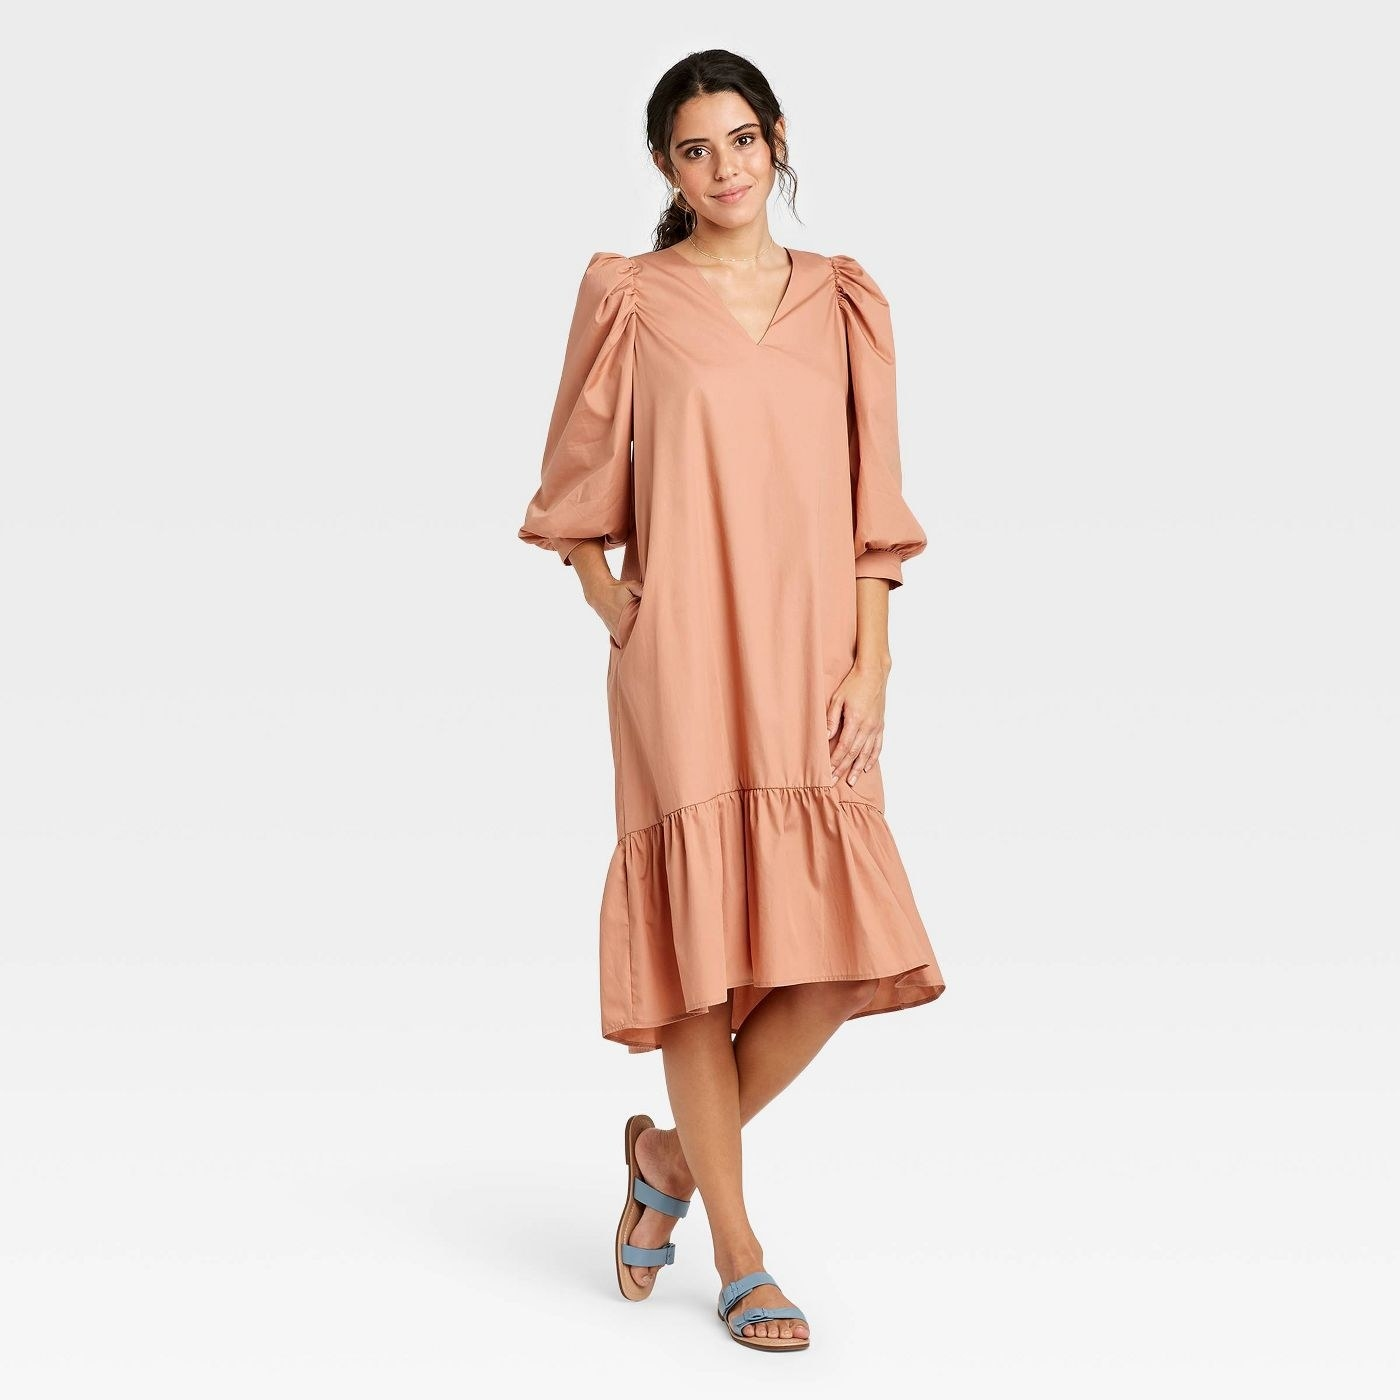 Model wearing peach dress with 3/4 length bell sleeves